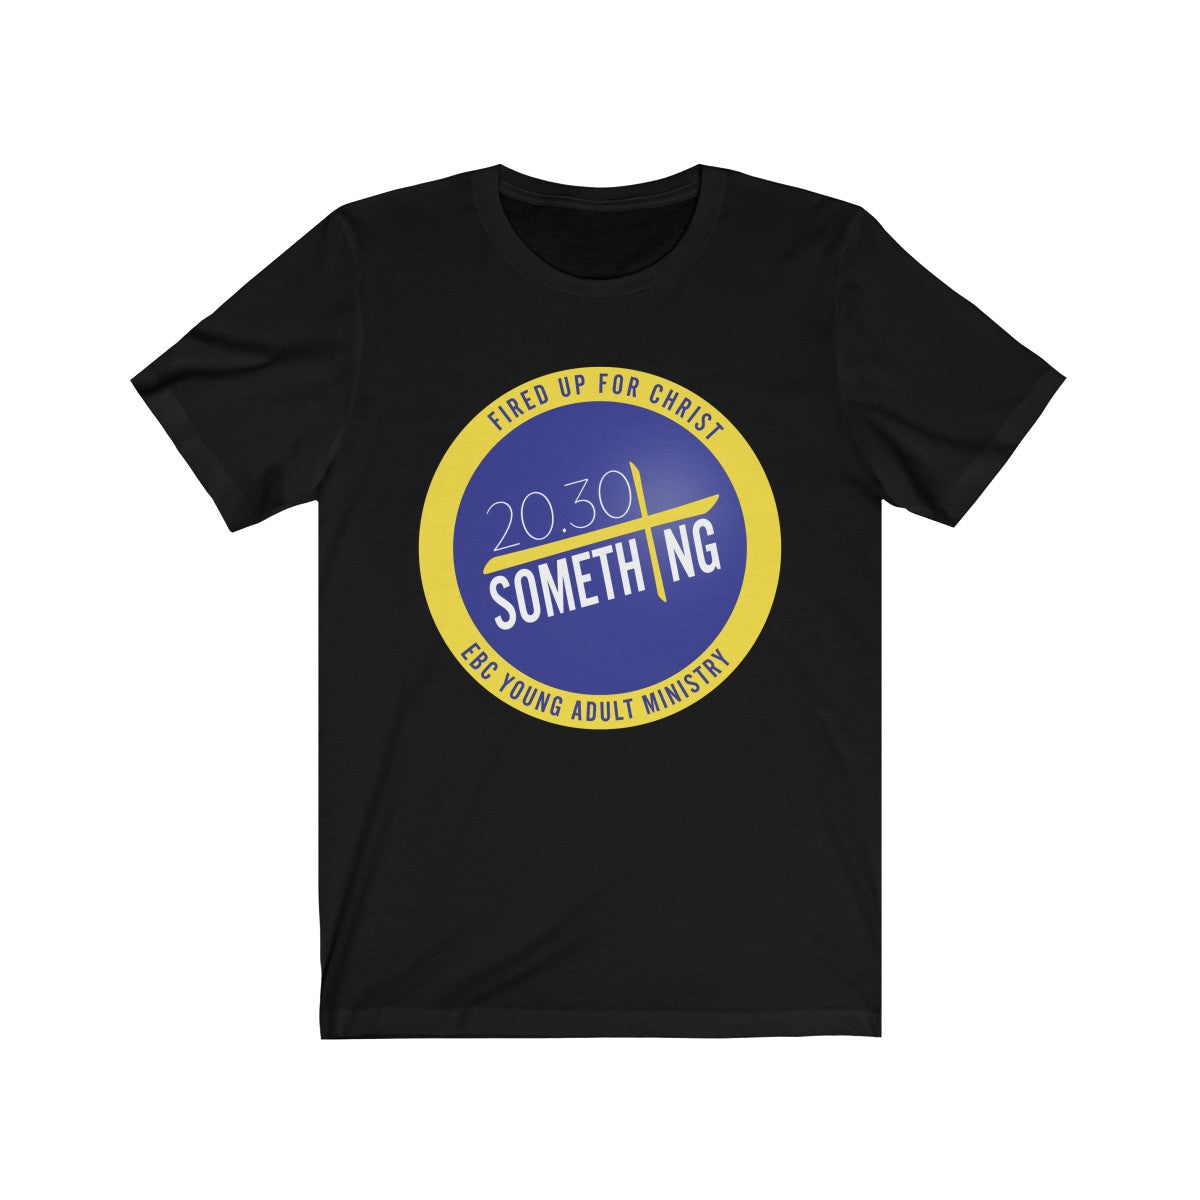 20/30 Something Ministries Shirt